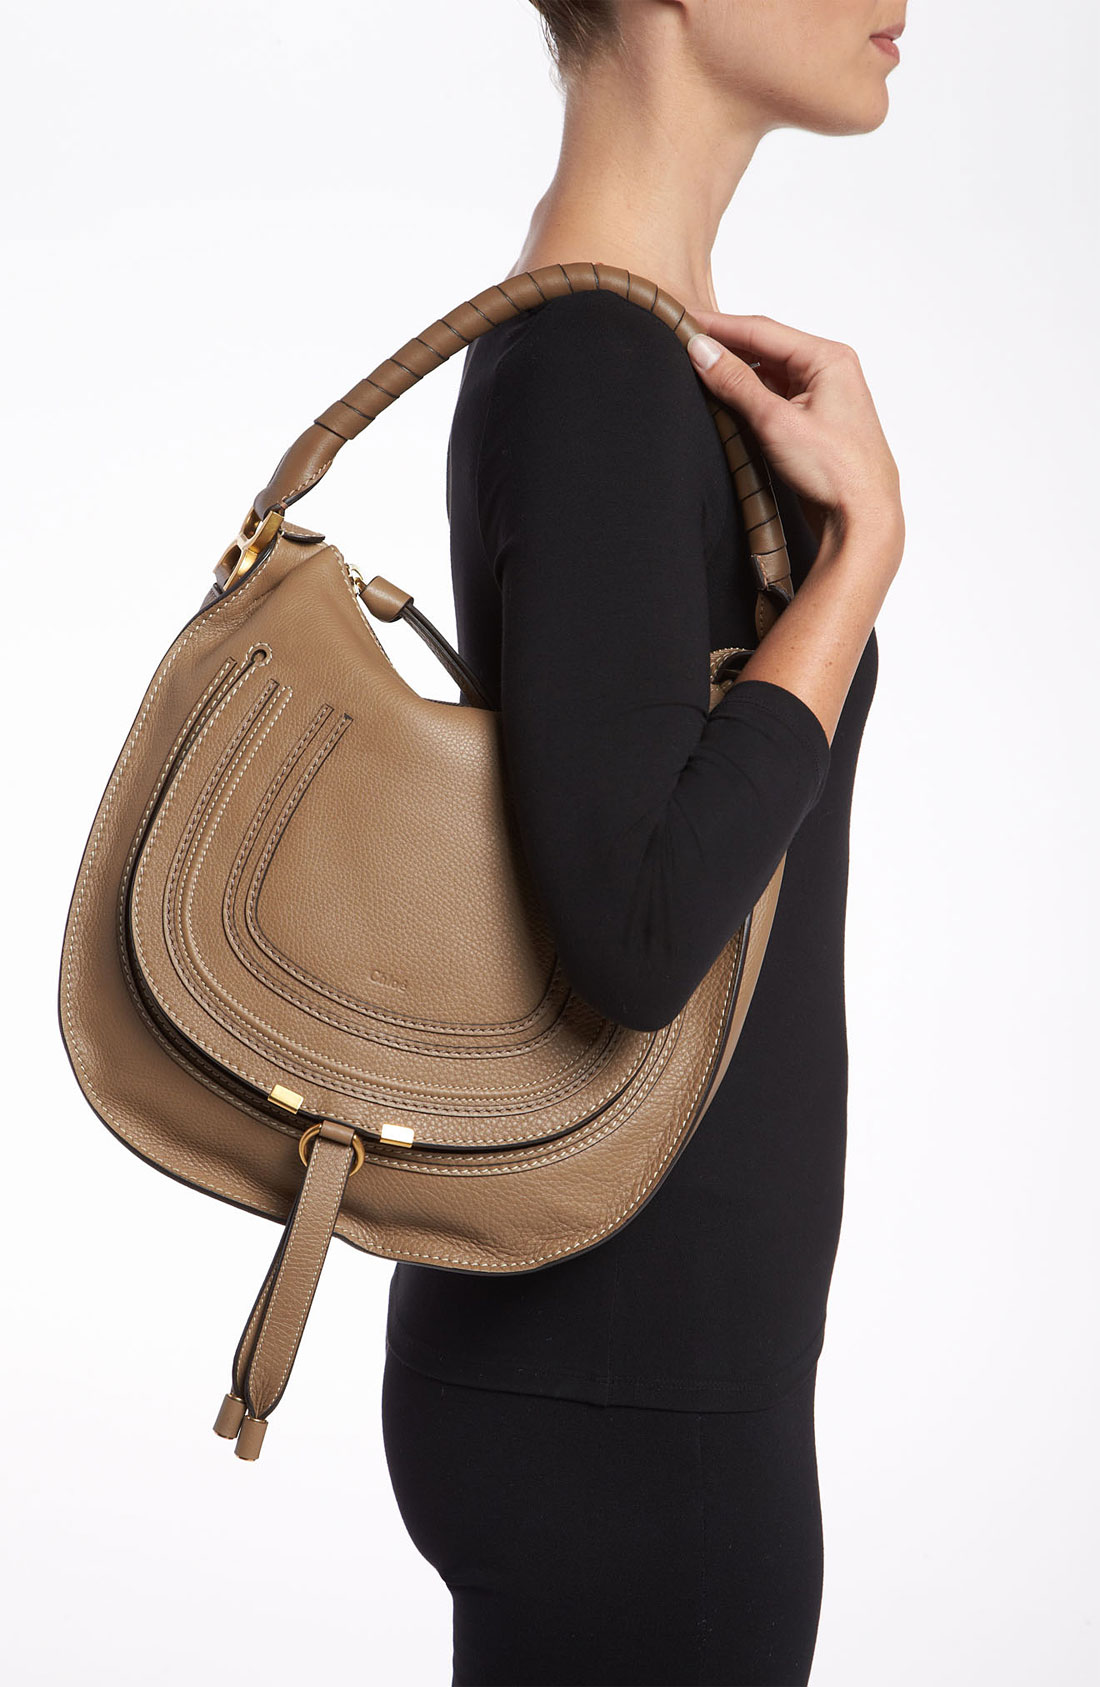 Chlo¨¦ \u0026#39;Marcie - Medium\u0026#39; Leather Hobo in Khaki (nut) | Lyst